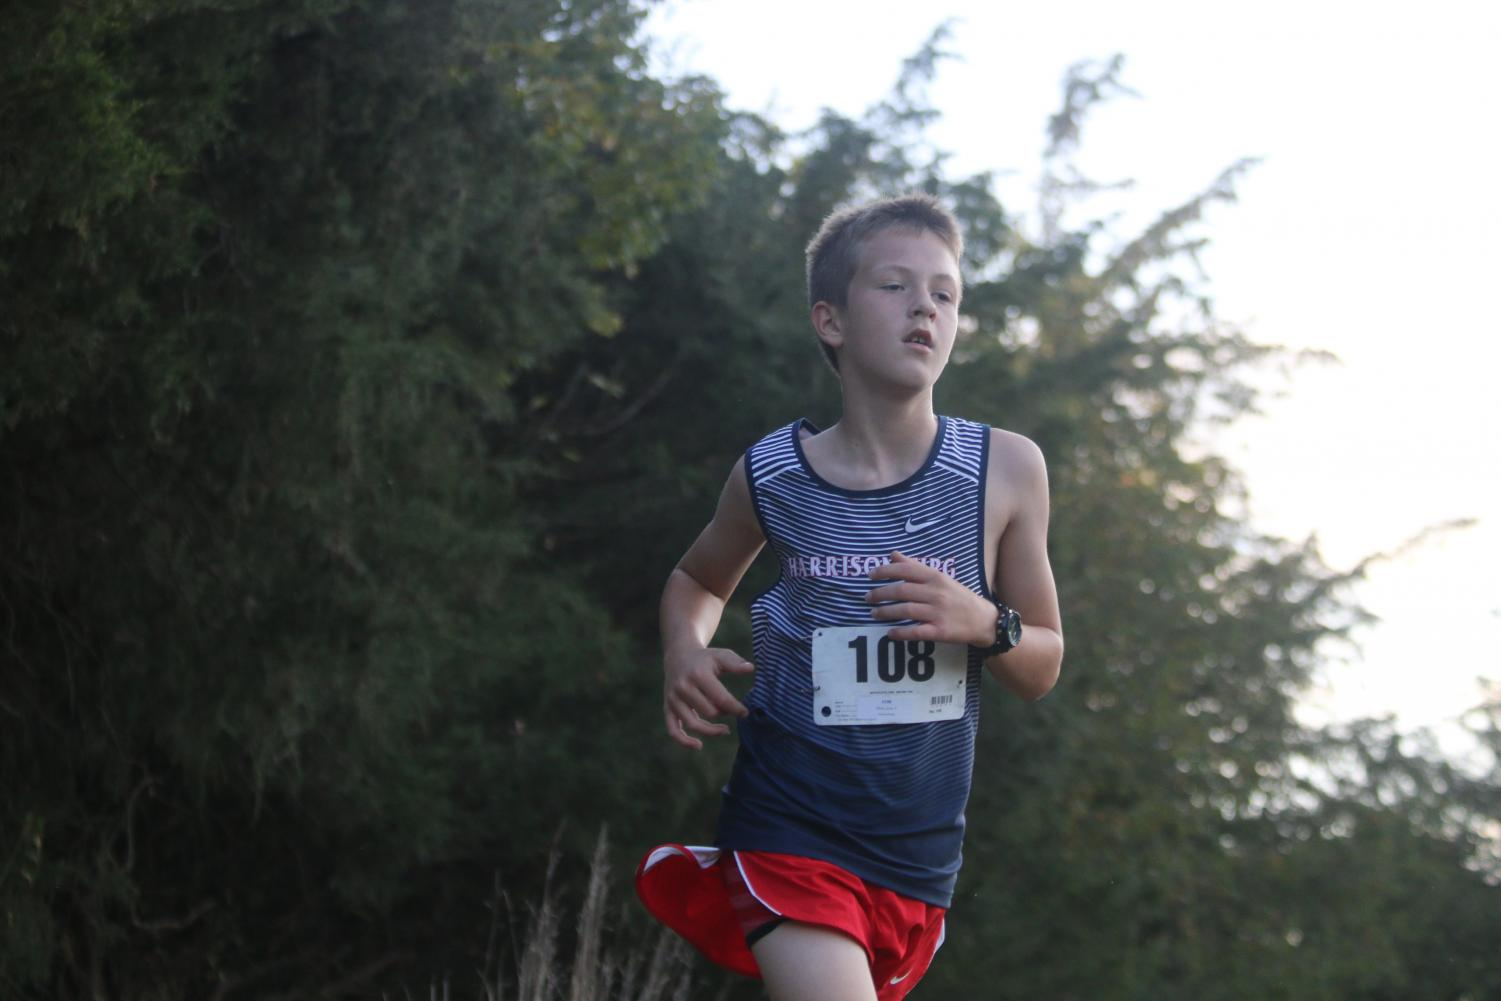 Evan Eberly competes in City/County Champs on Wednesday. The boys team won for the 10th time in program history.